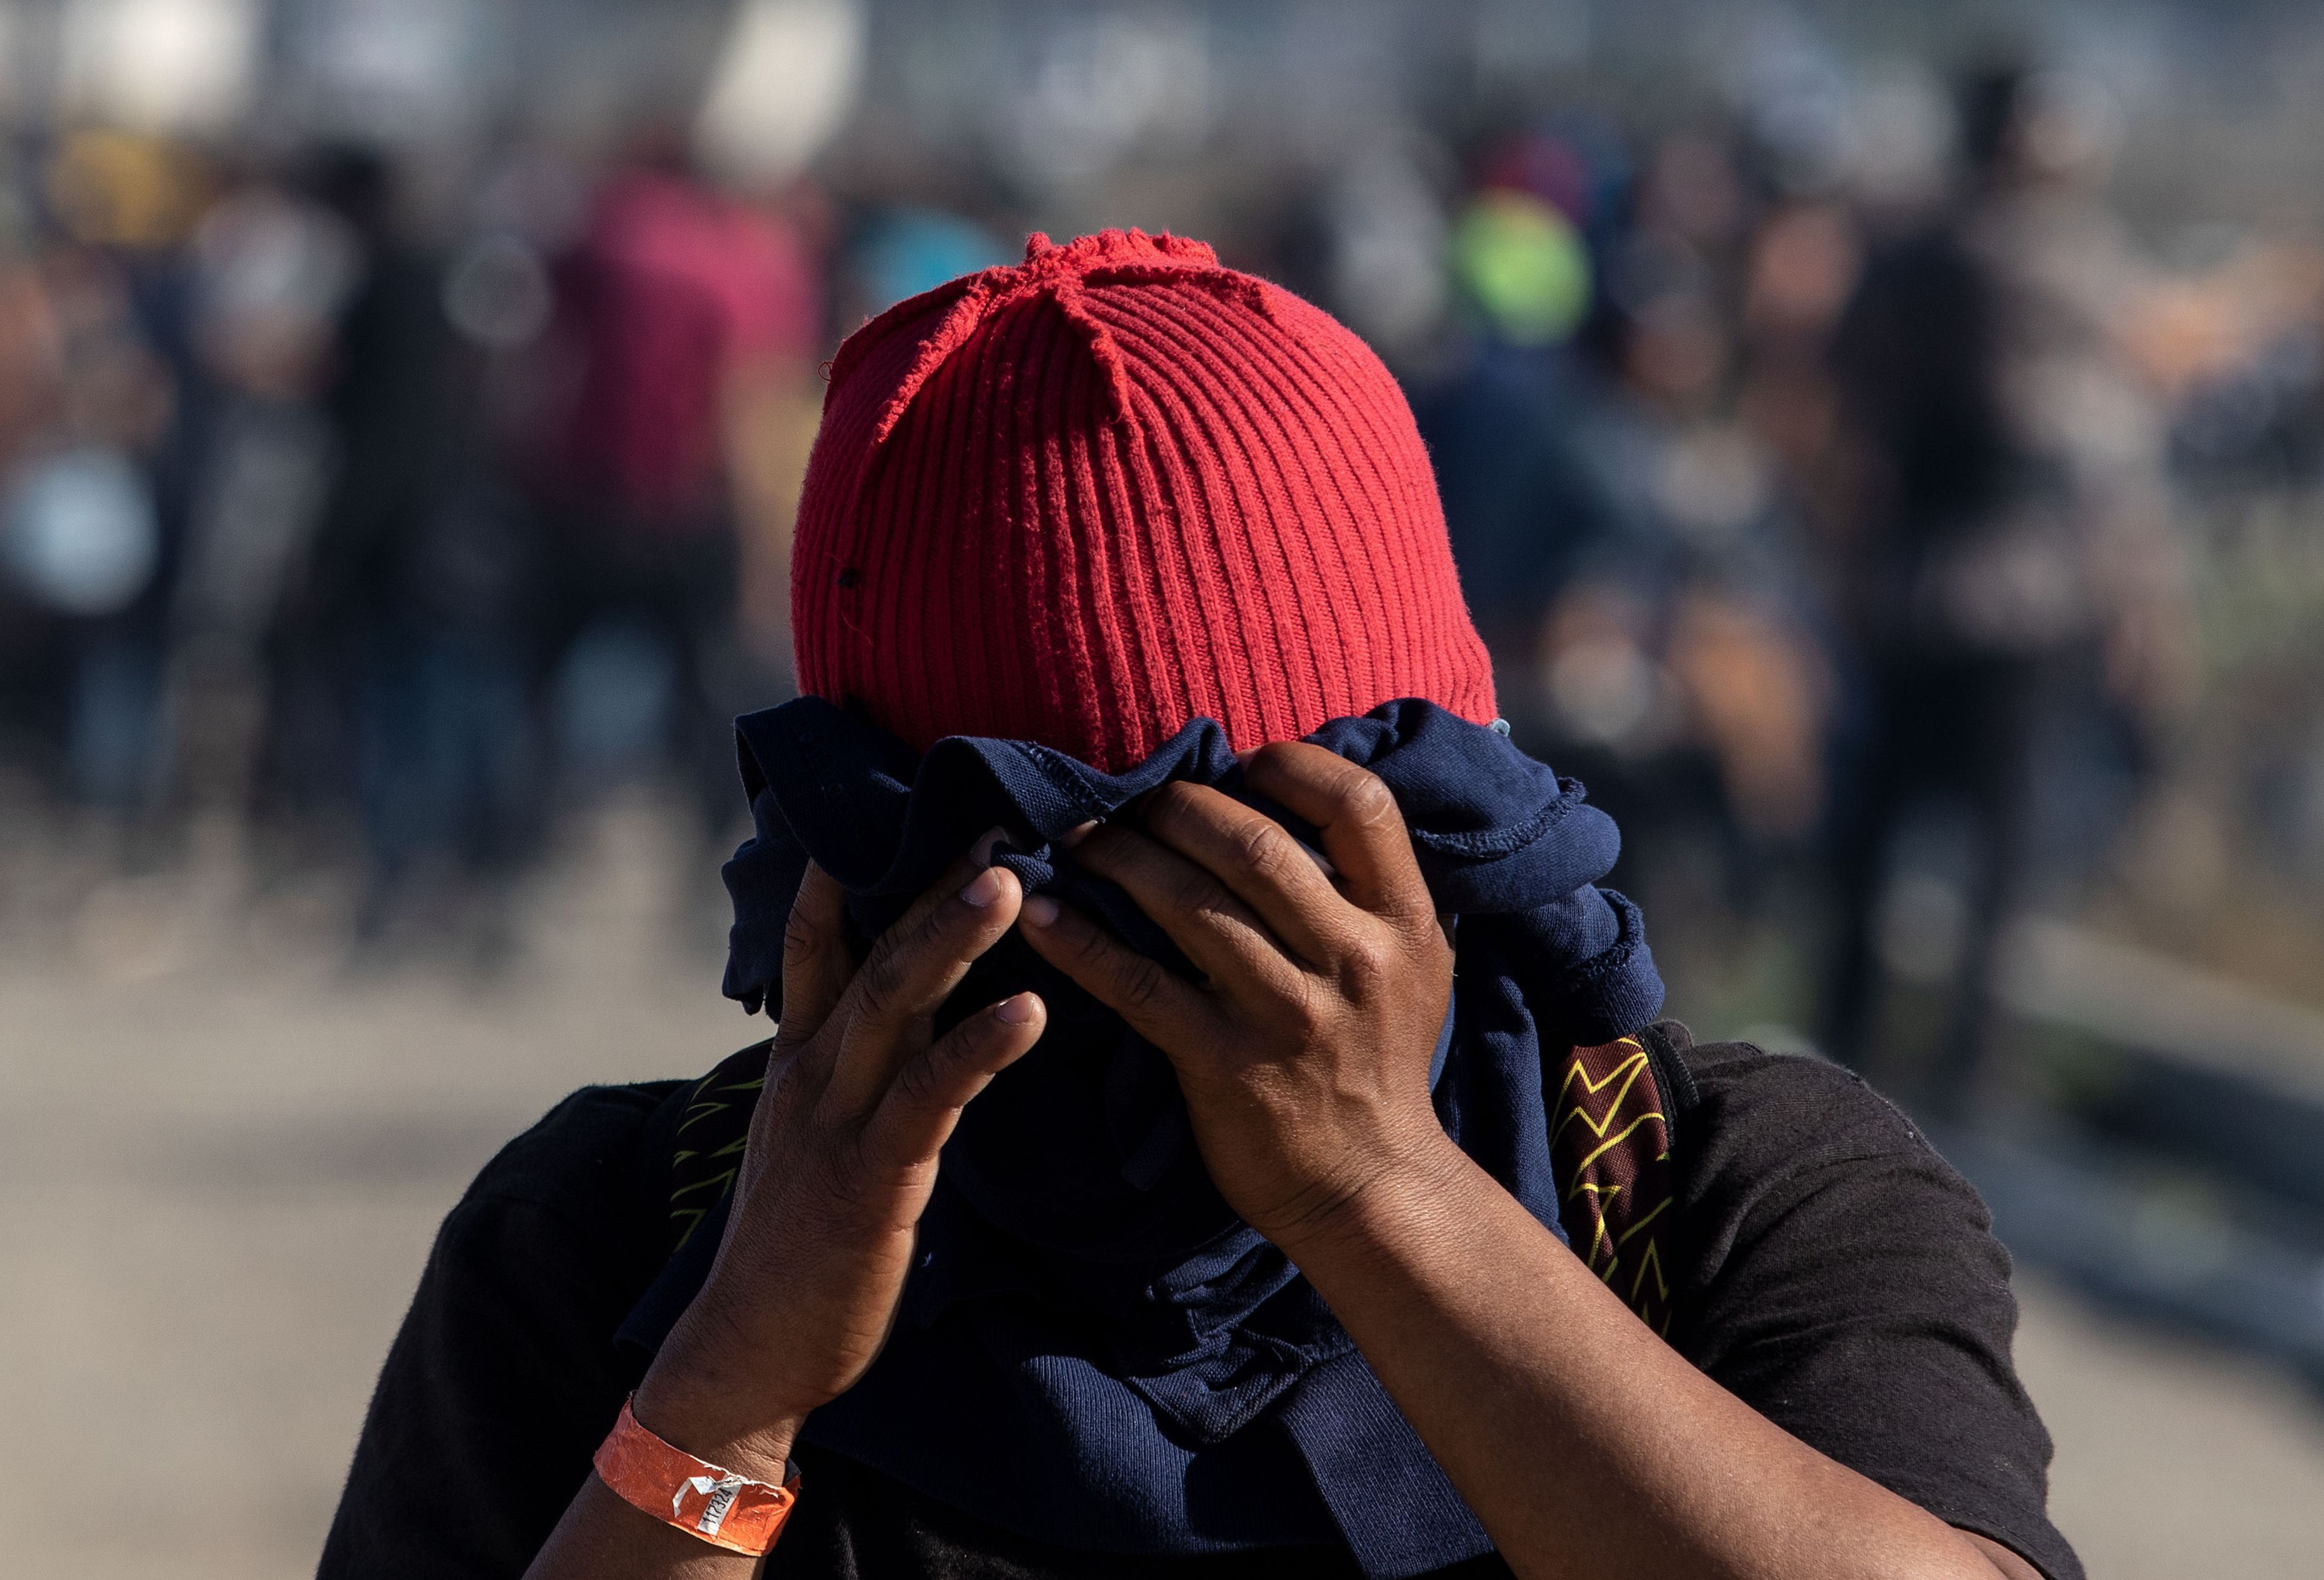 A migrant wearing a red hat and covering their face